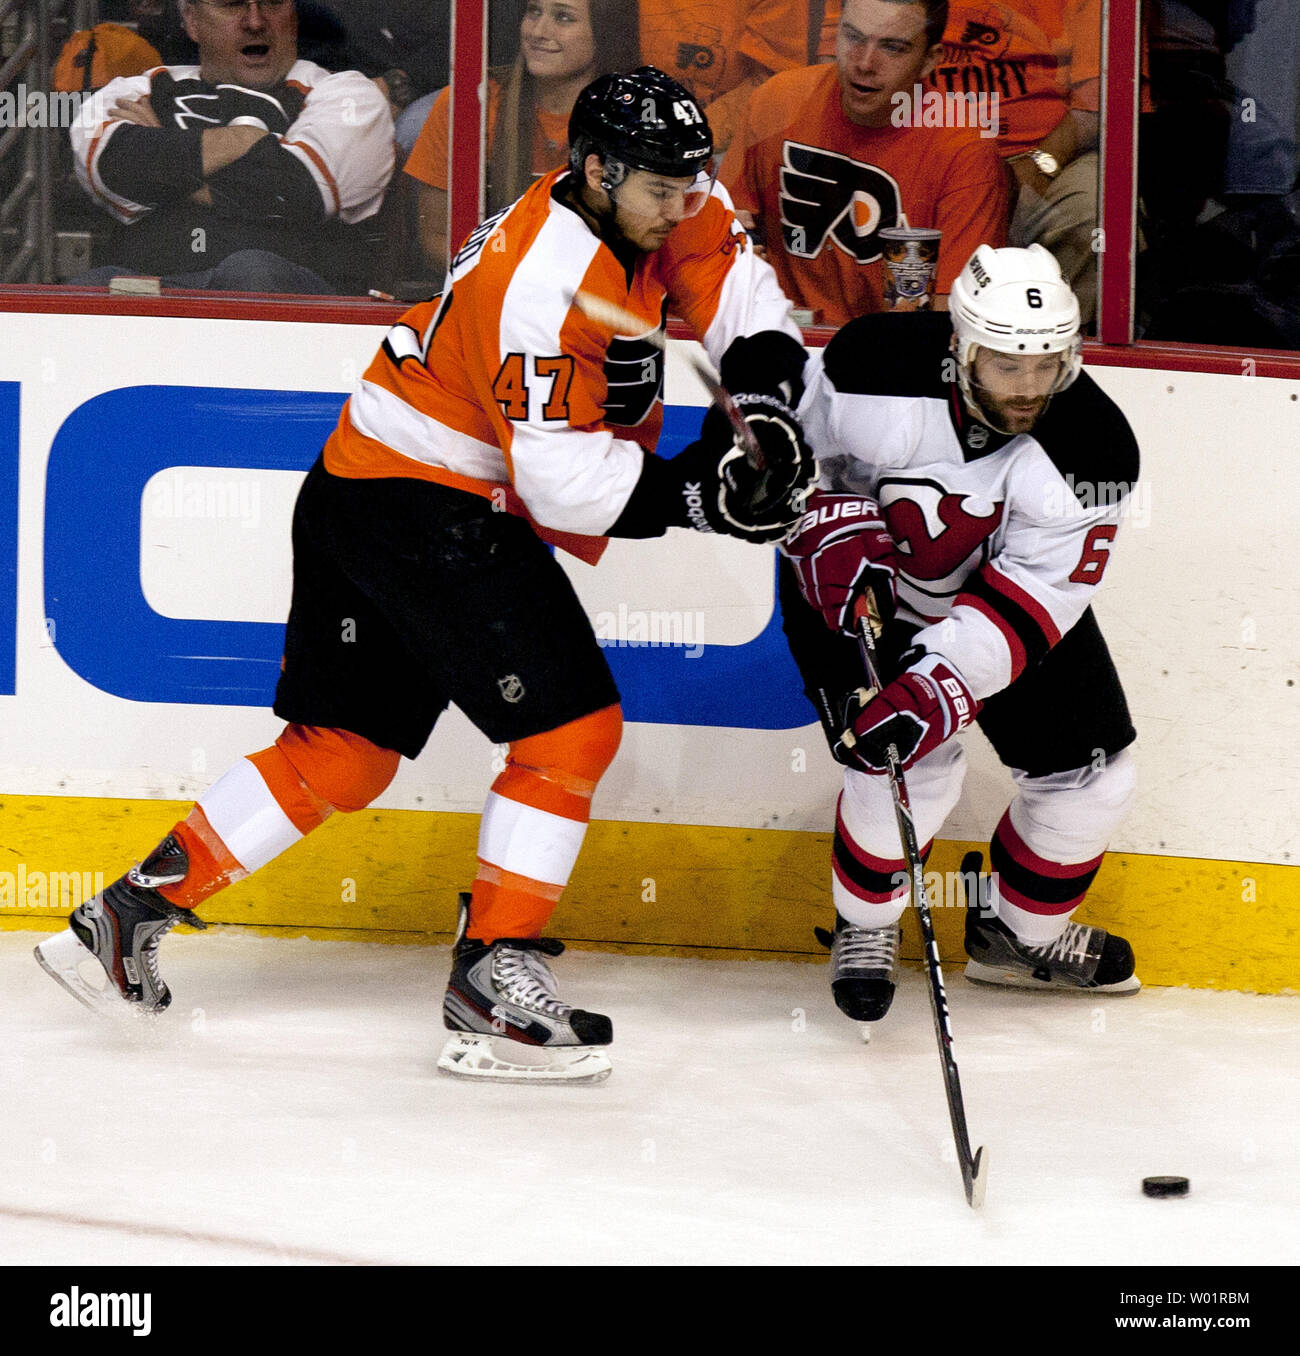 check out 9d6af 200f1 Philadelphia Flyers Eric Wellwood (47) battles with New ...